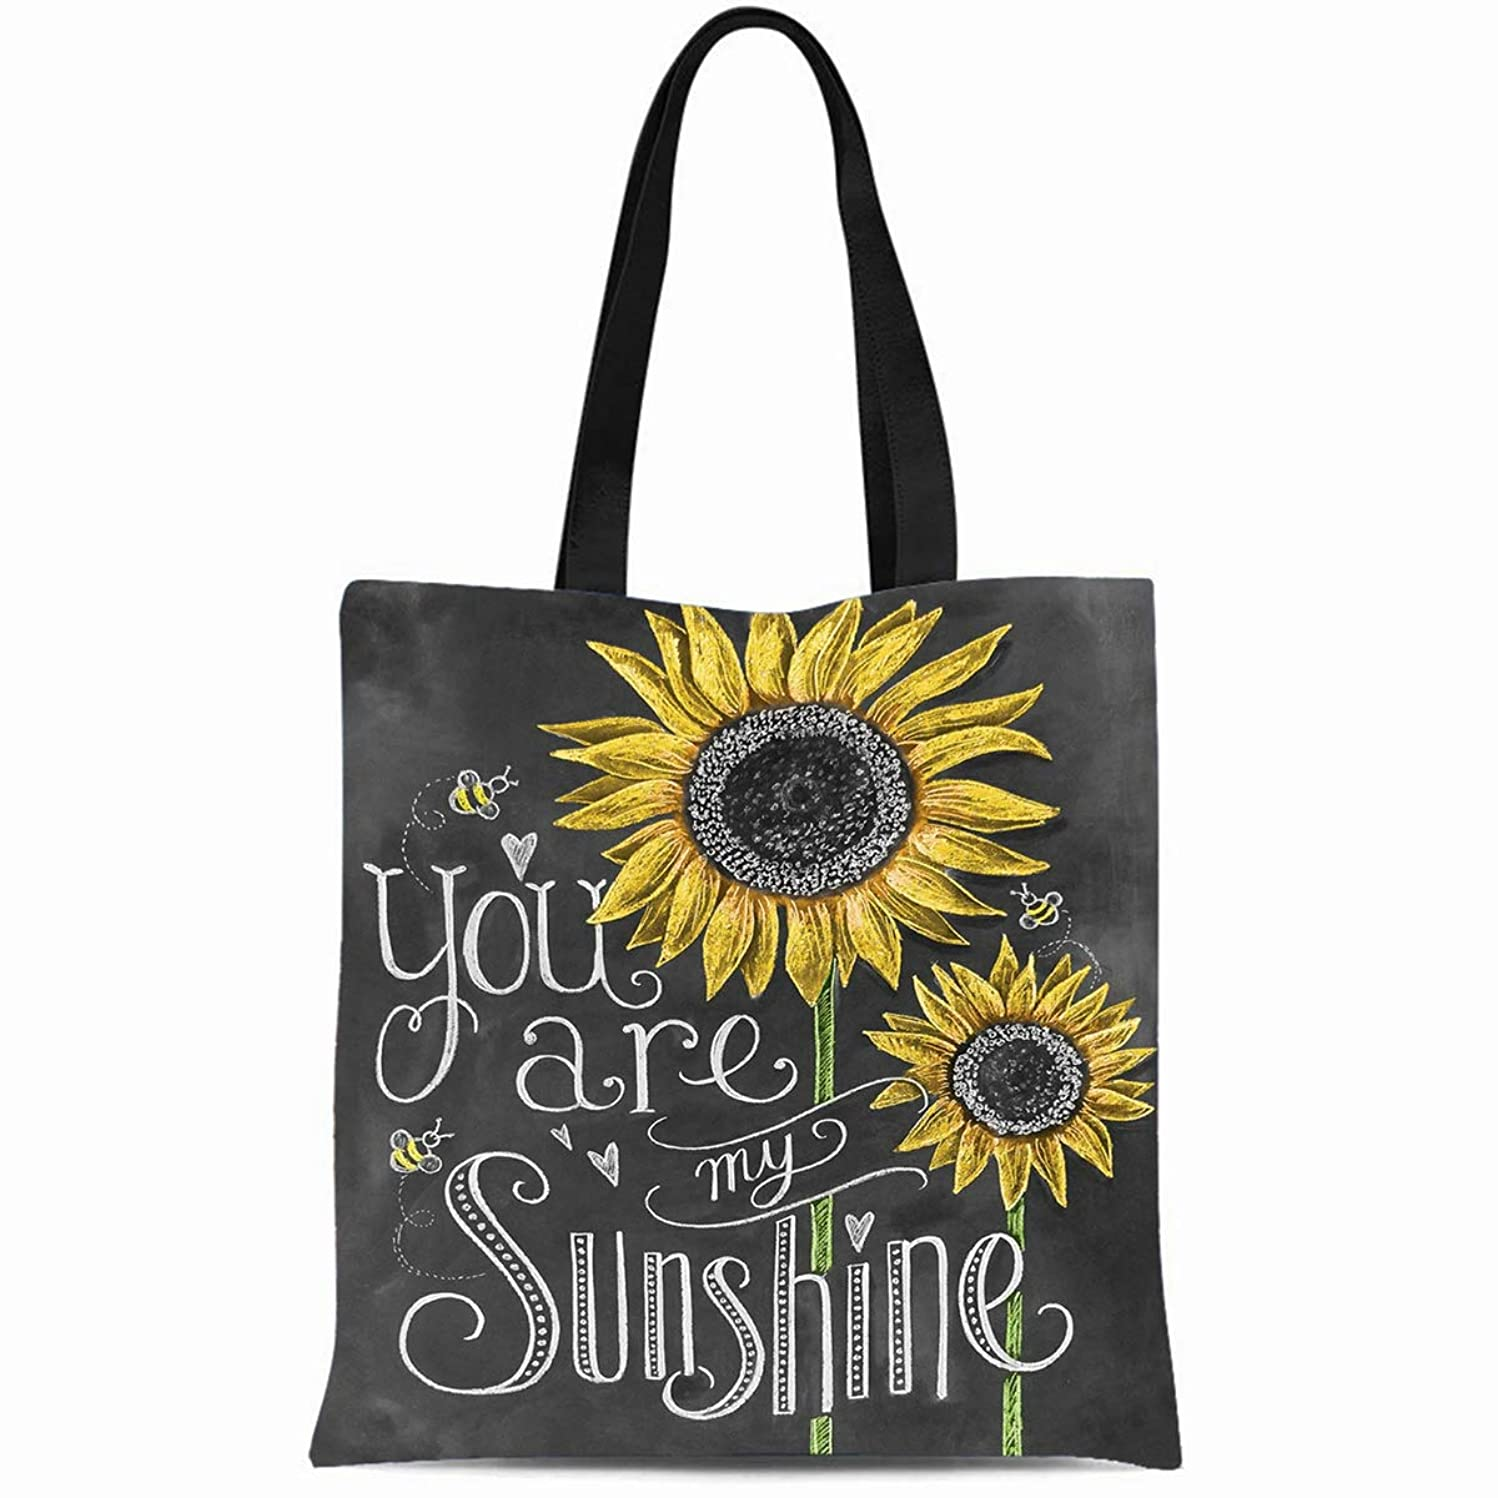 Ahawoso Canvas Tote Bag 14x16 Inches You Are My Sunshine Sunflowers Chalk Painting Durable Reusable Custom Shopping Shoulder Grocery Bag